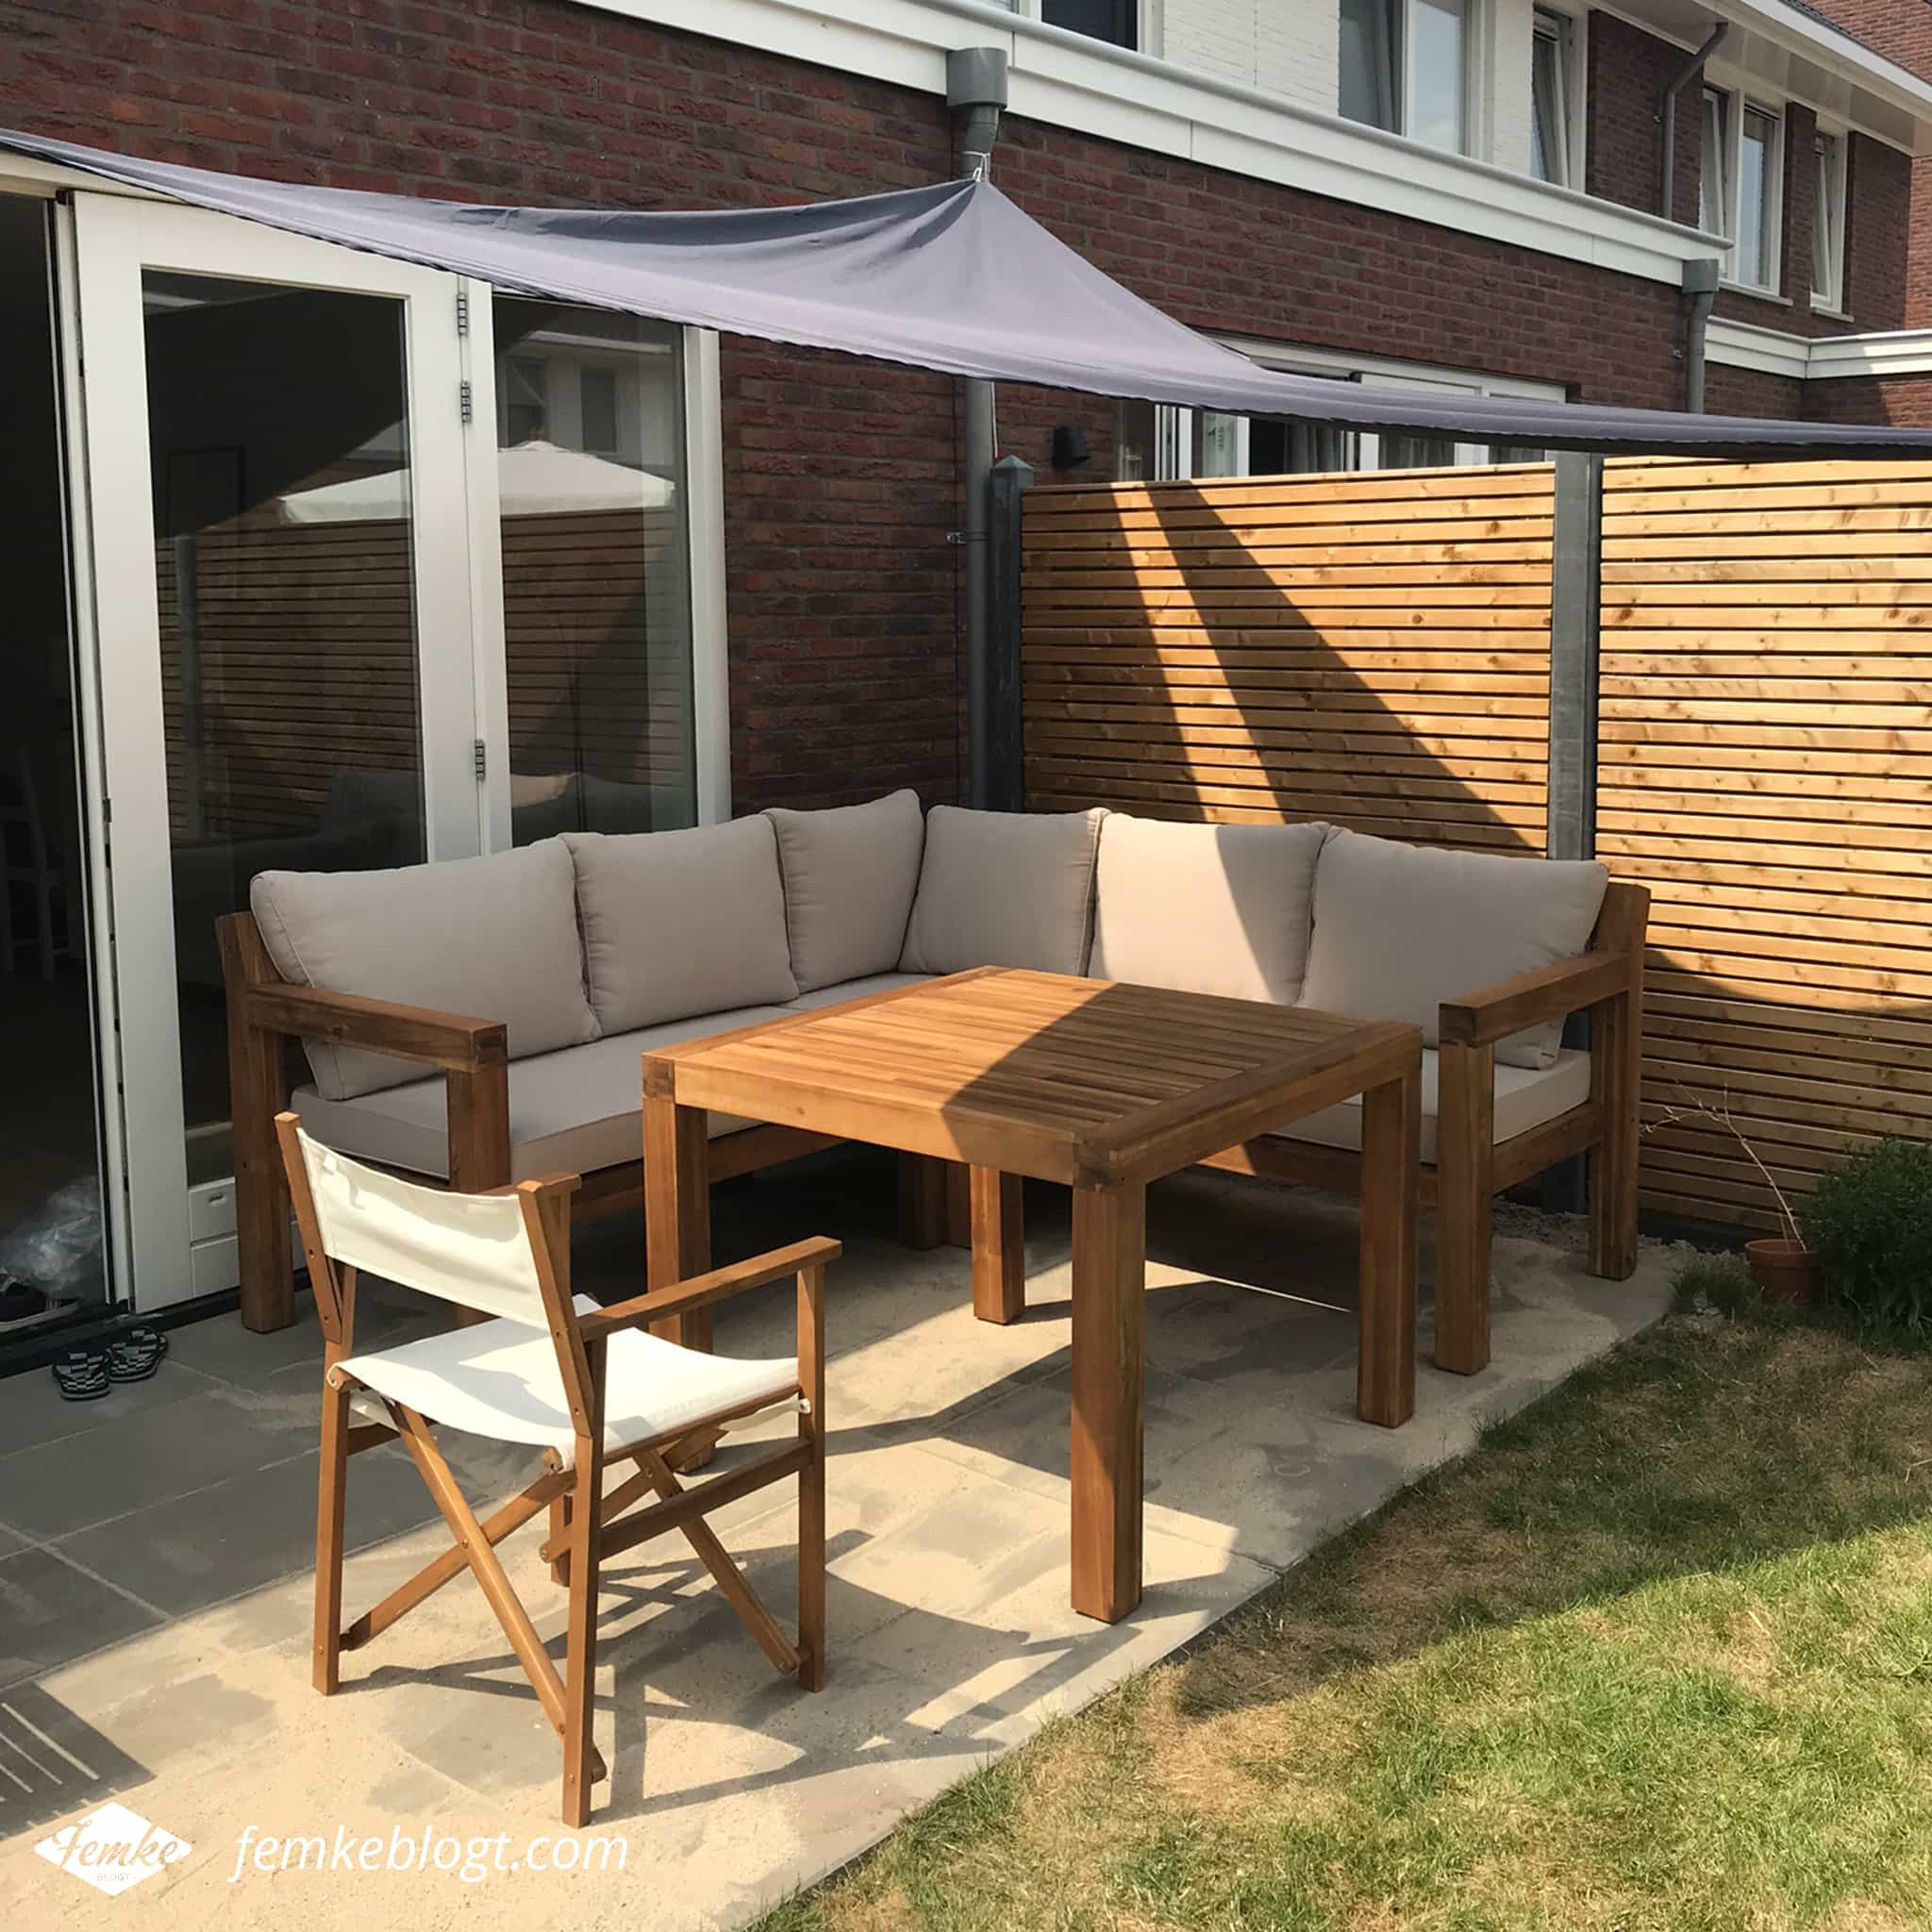 Maandoverzicht juli | High dining set Curinga